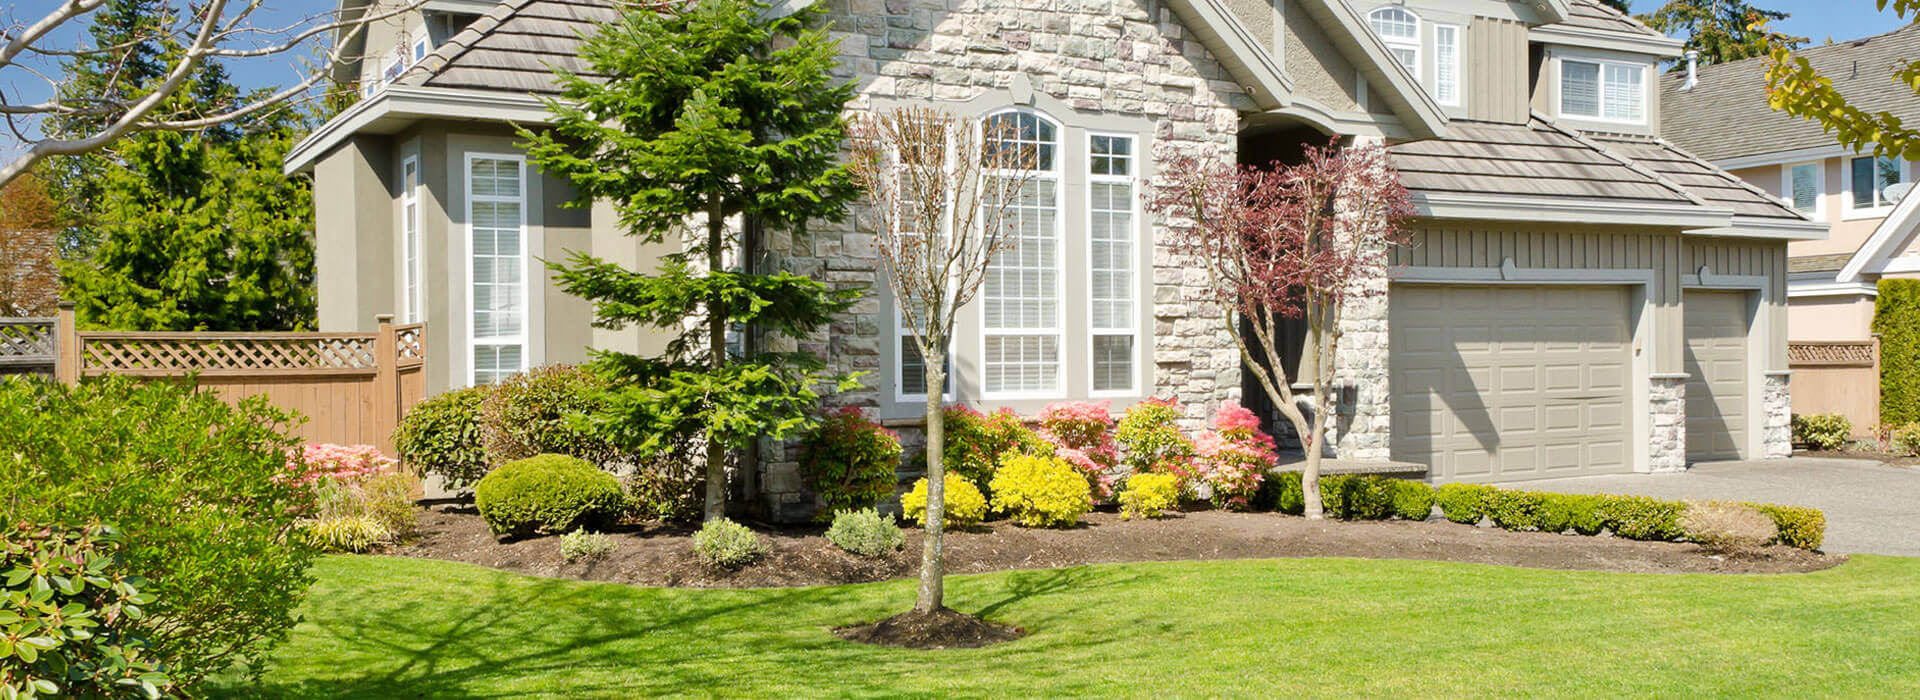 K & H Yard Services and Landscaping Lawn Services